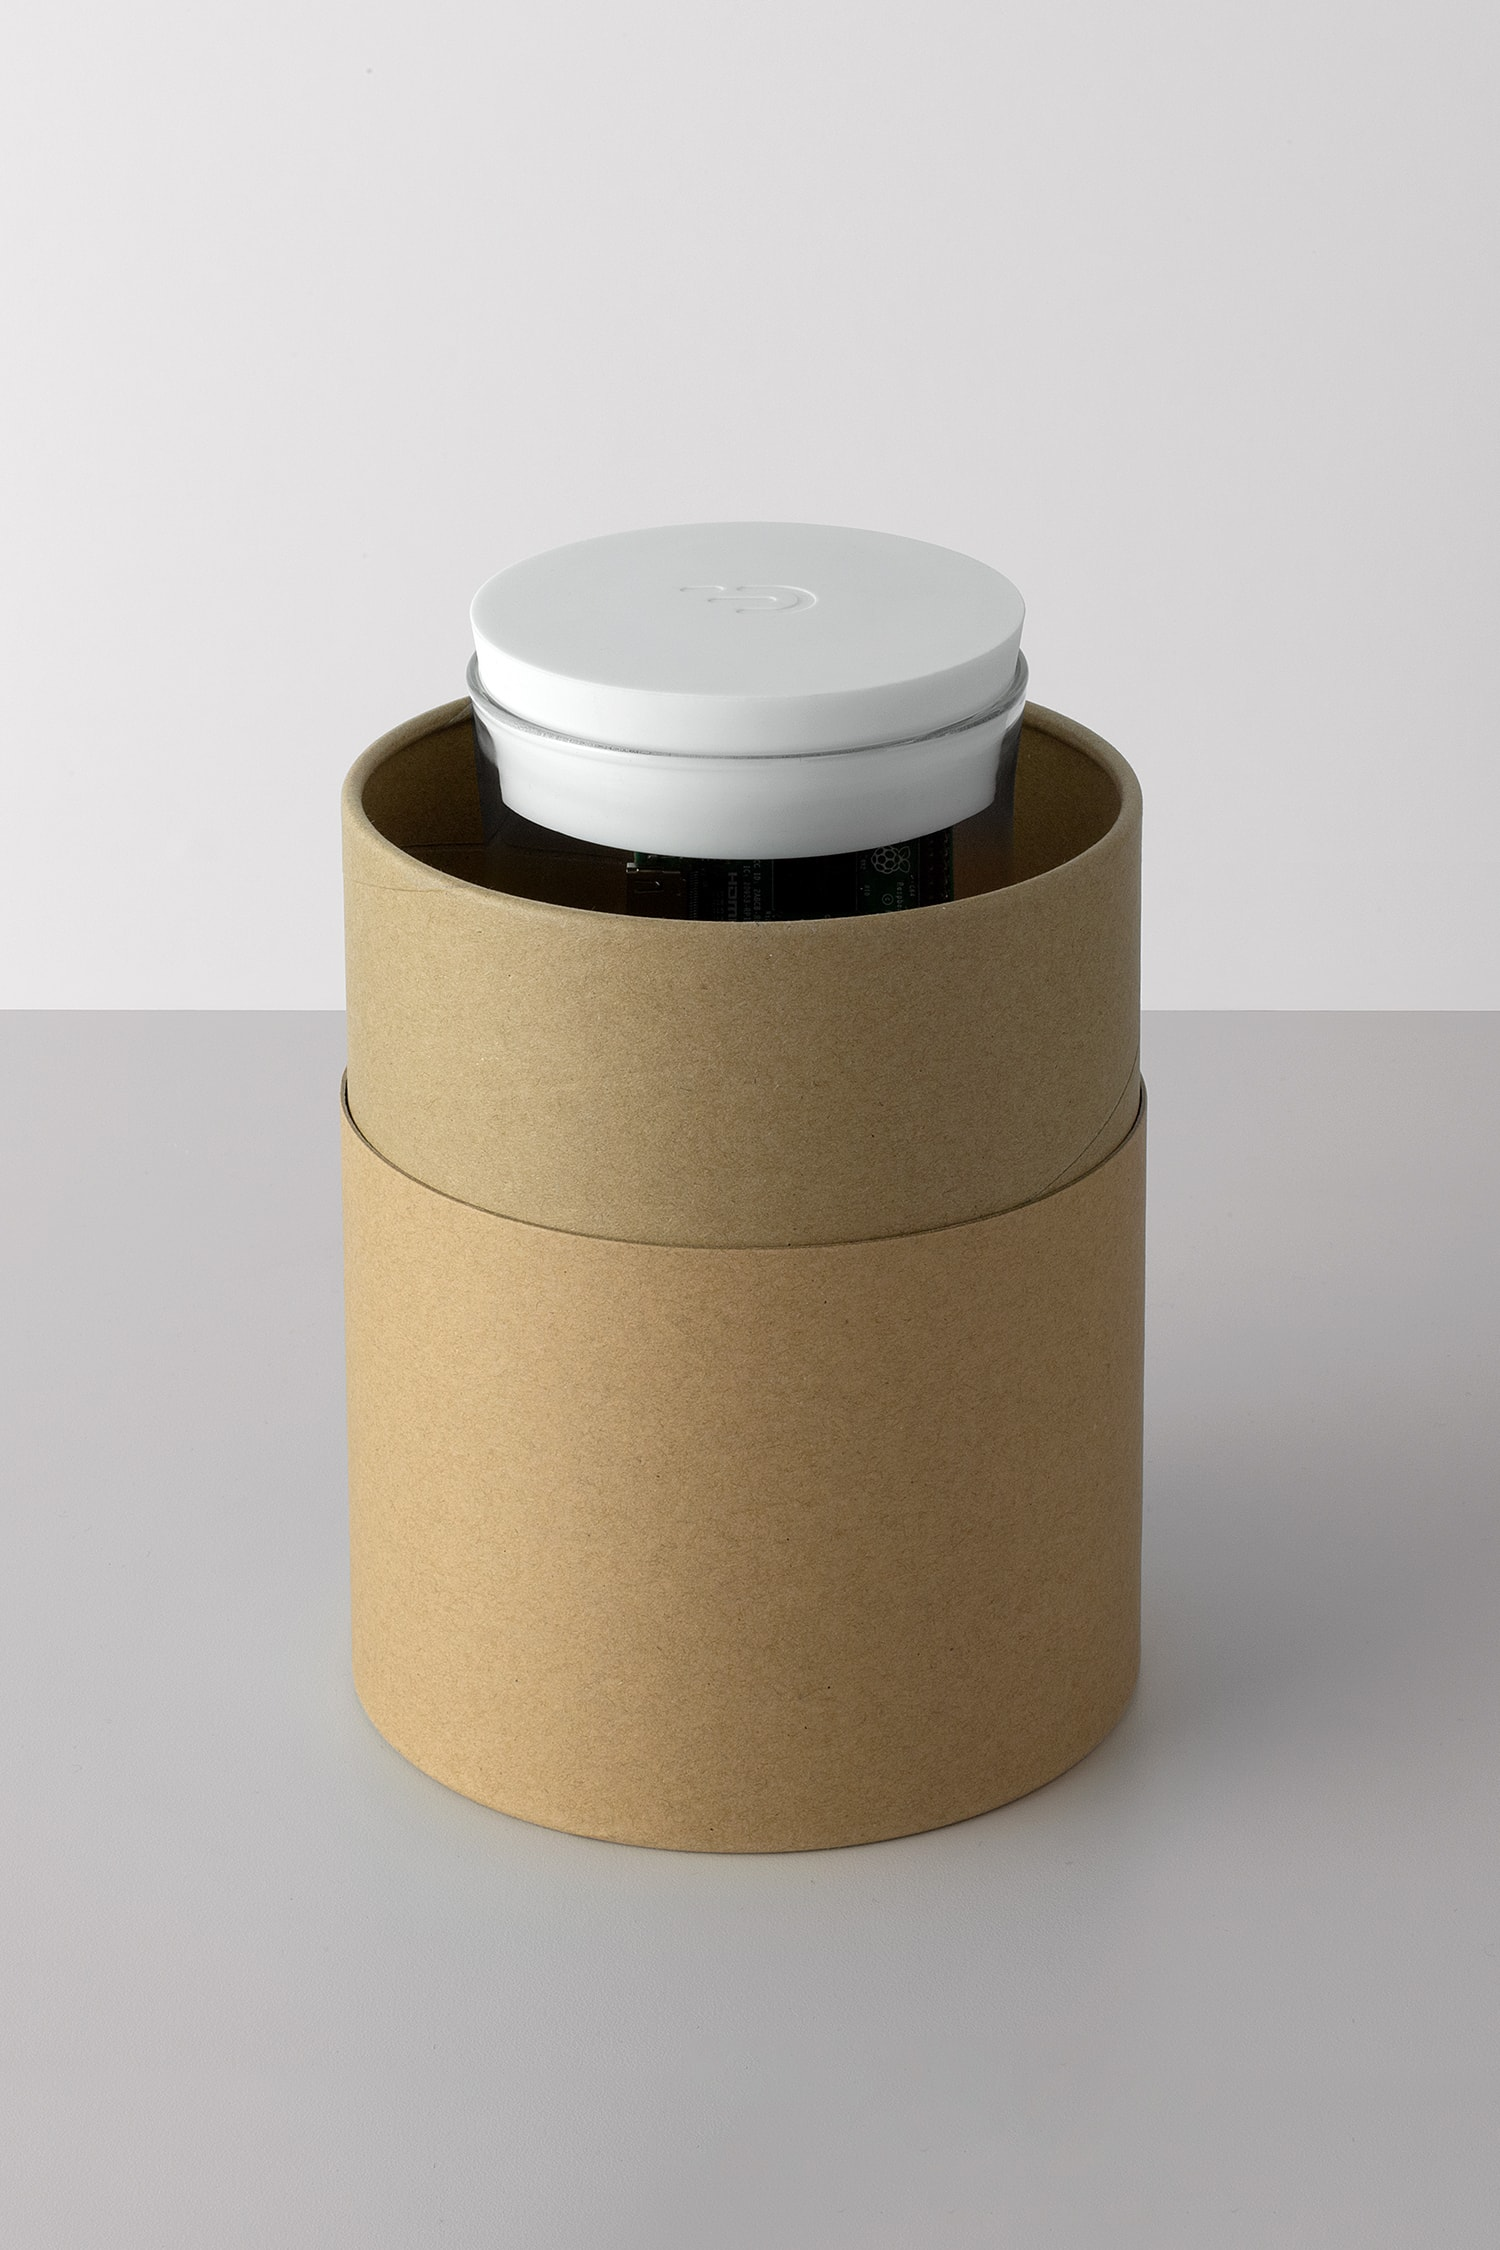 Front view of the DADI Founding Node in packaging. The pacaging is a cardboard cylinder with the lid off. Inside we can see the top of the DADI Founding Node and the logo embossed into the silicone top.